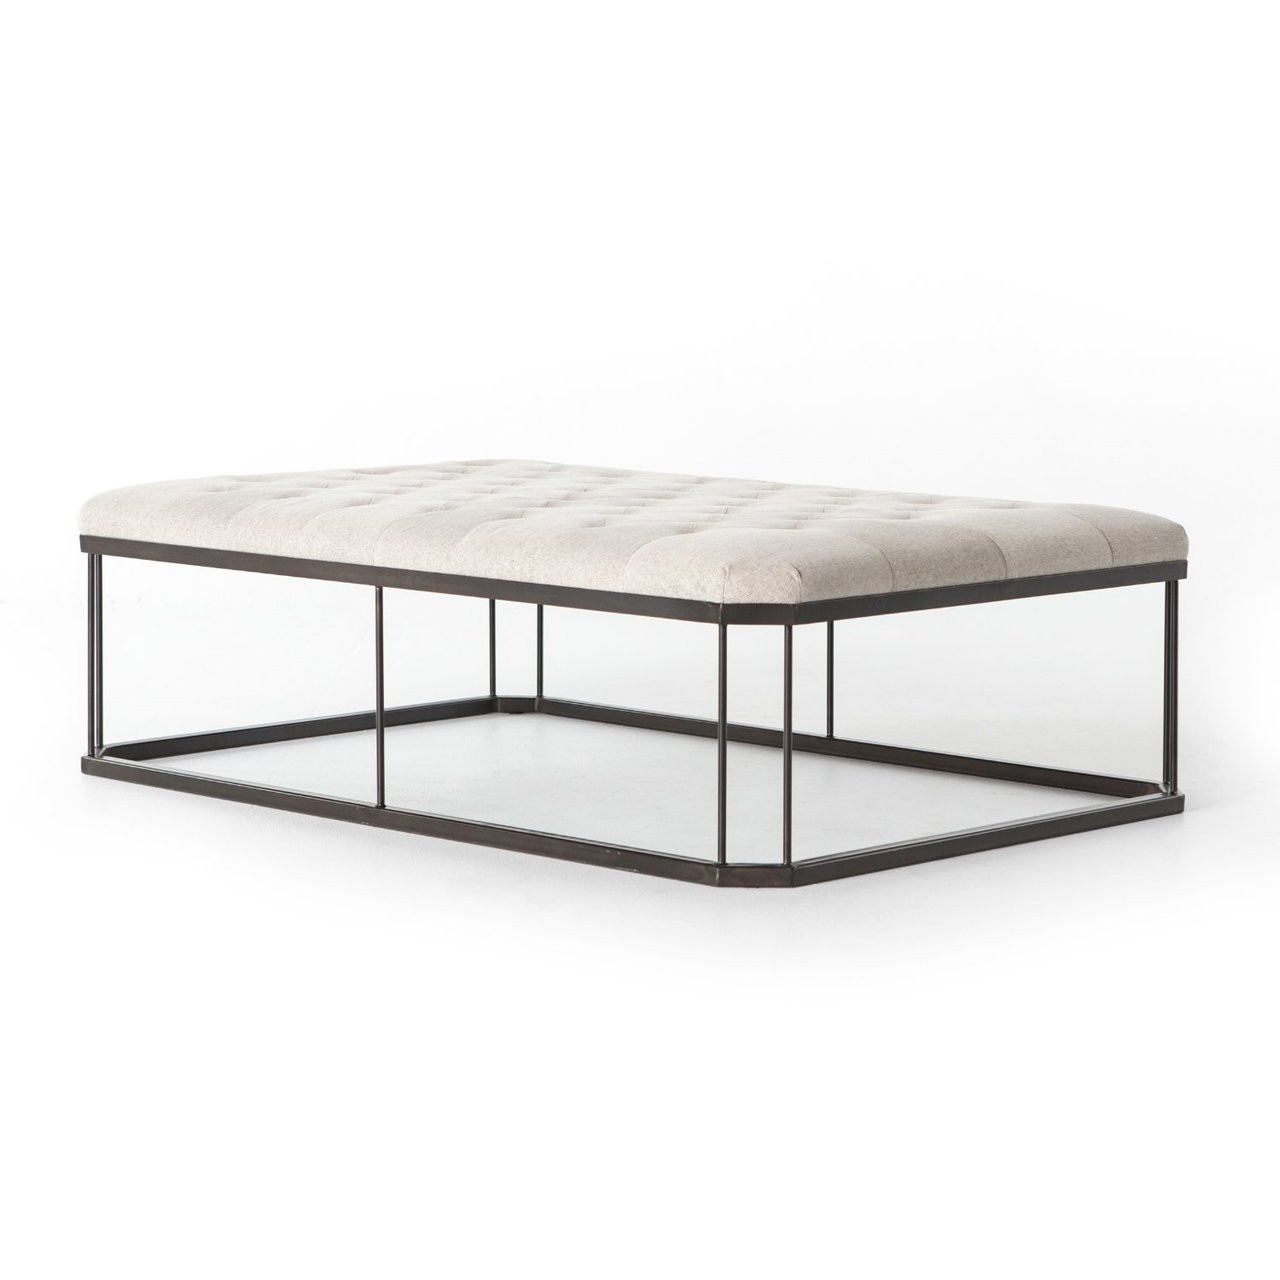 - Isle Tufted Upholstered Cocktail Ottoman Zin Home